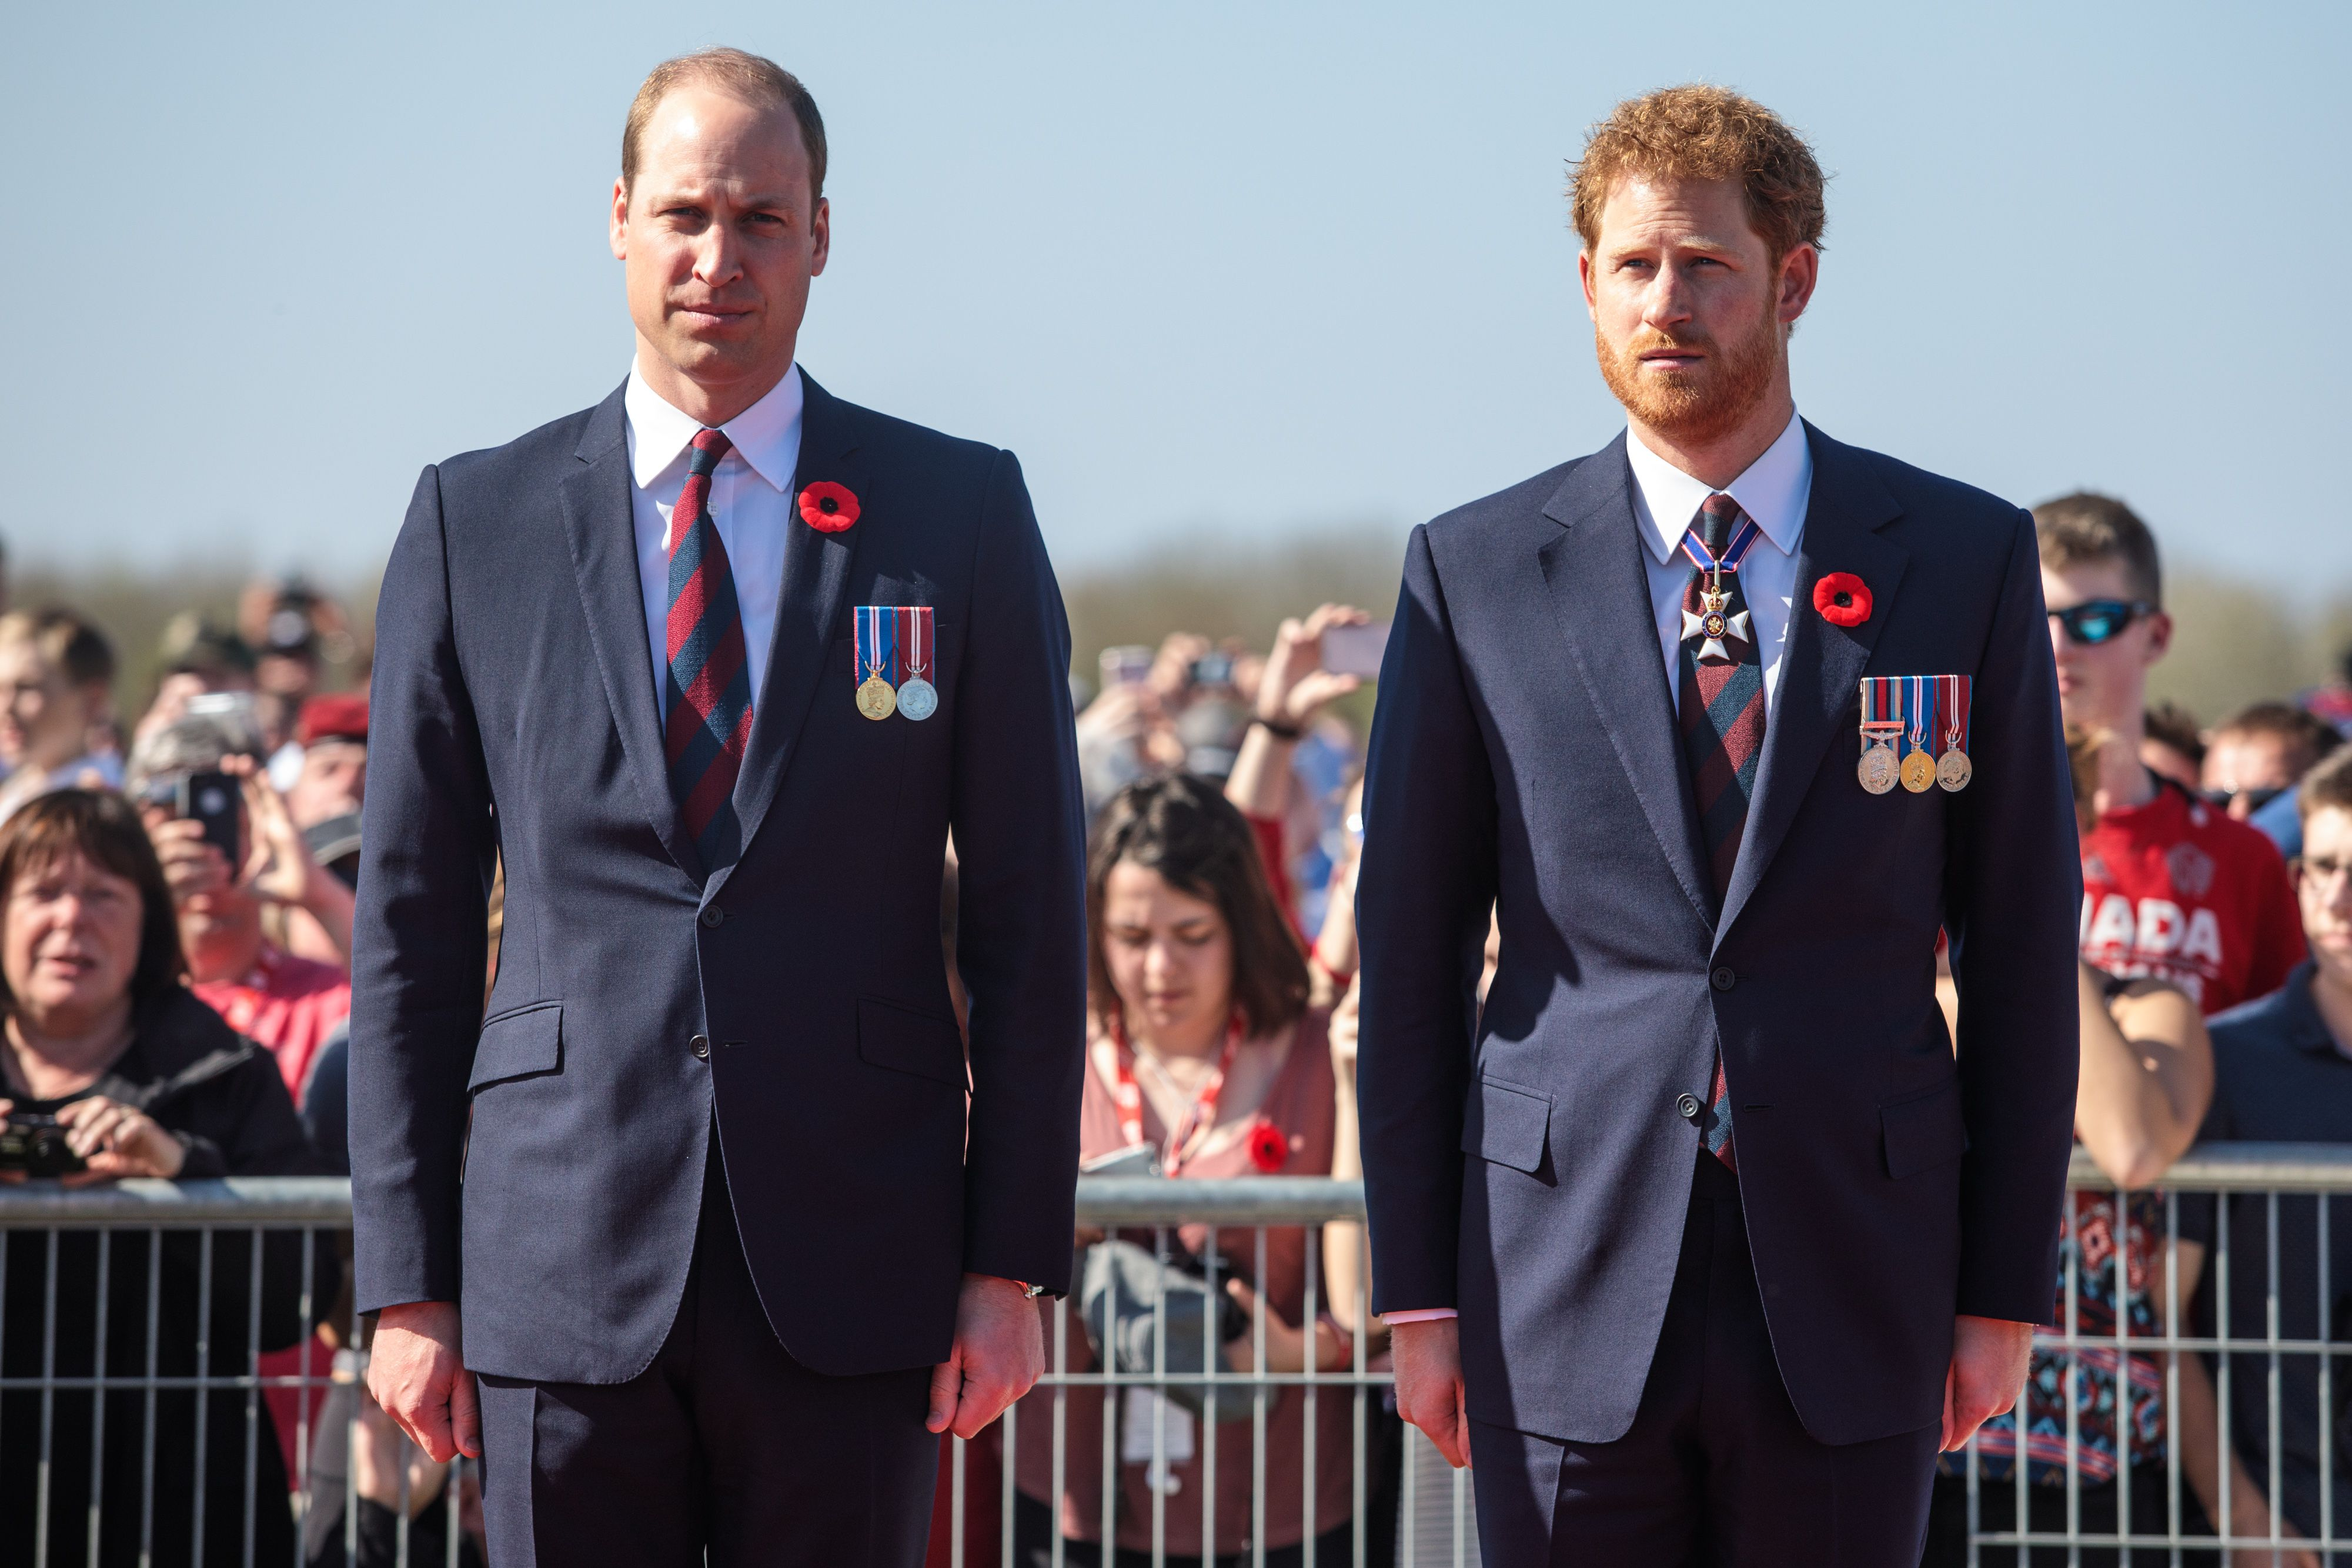 The Palace Confirms Prince Harry and Prince William Won't Walk Next to Each Other at Philip's Funeral